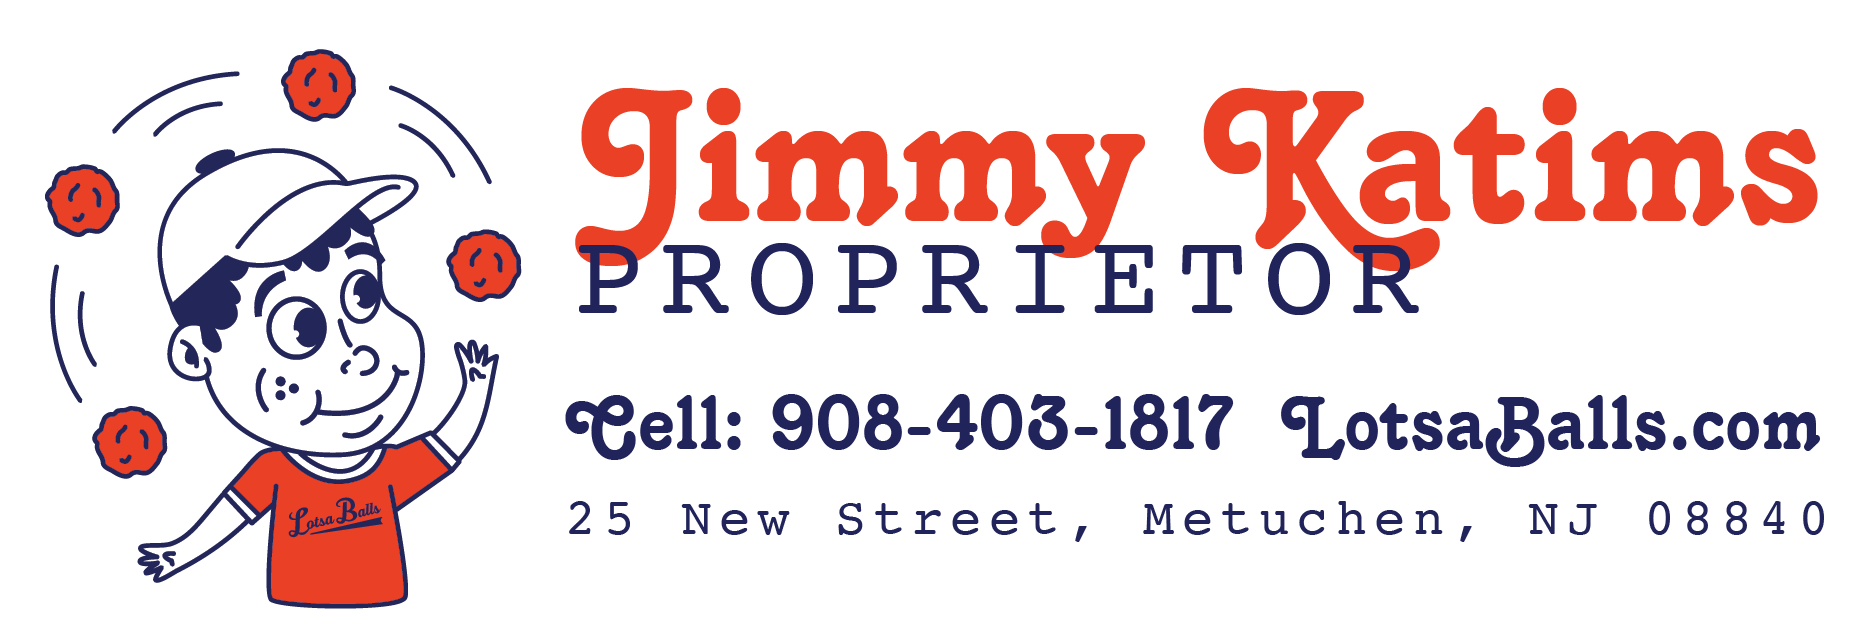 LOT-Email-Signature-Selections-Jimmy-01-03.png